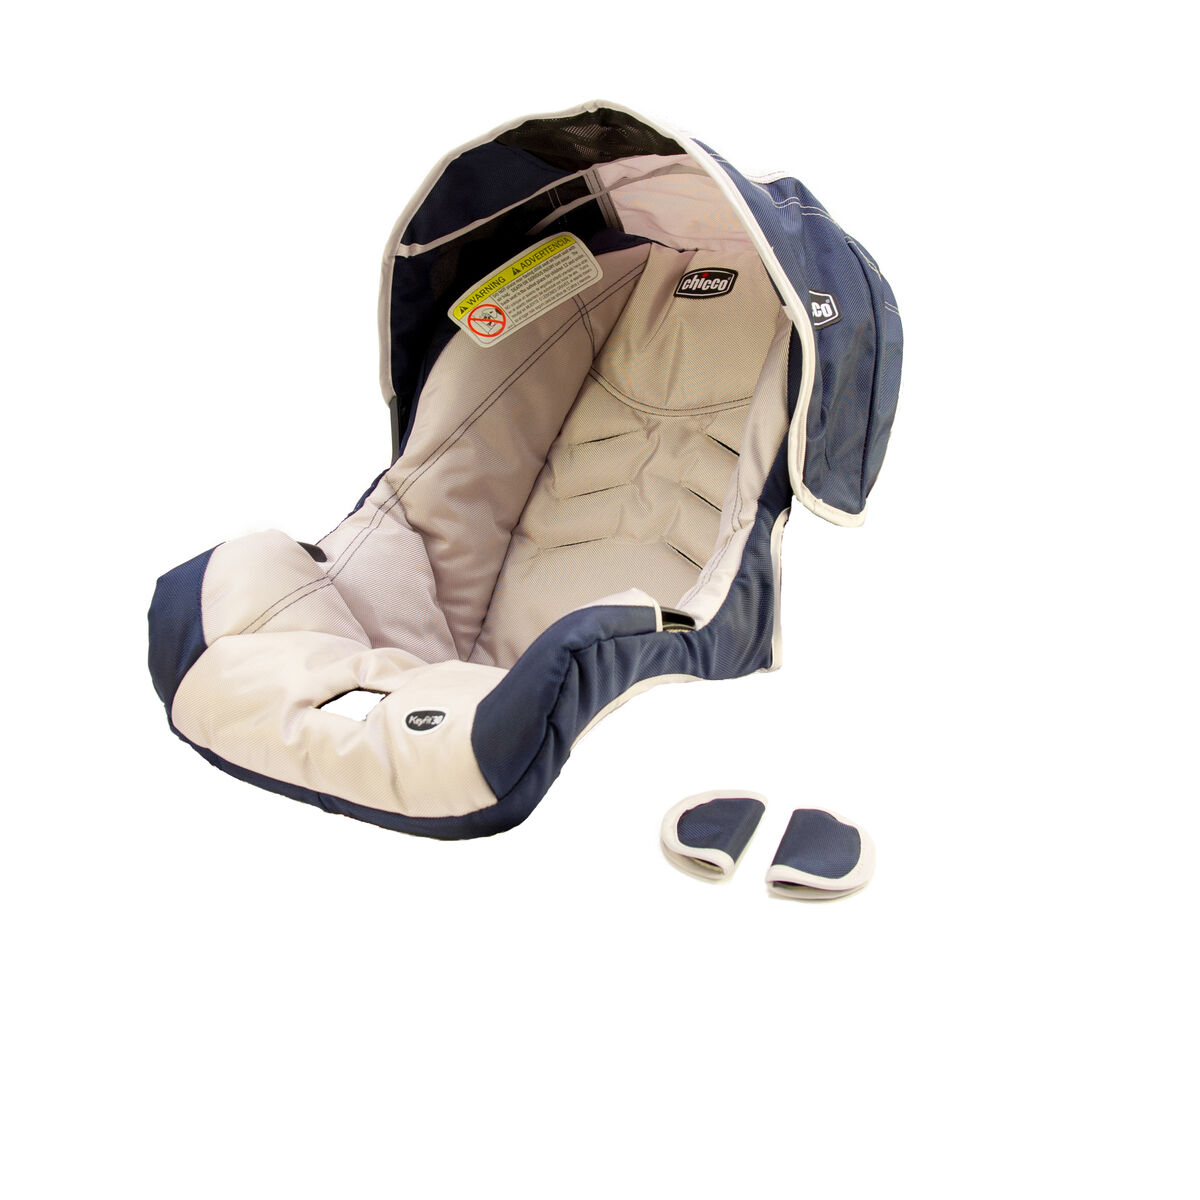 Car Seat Canopy Covers For Travel